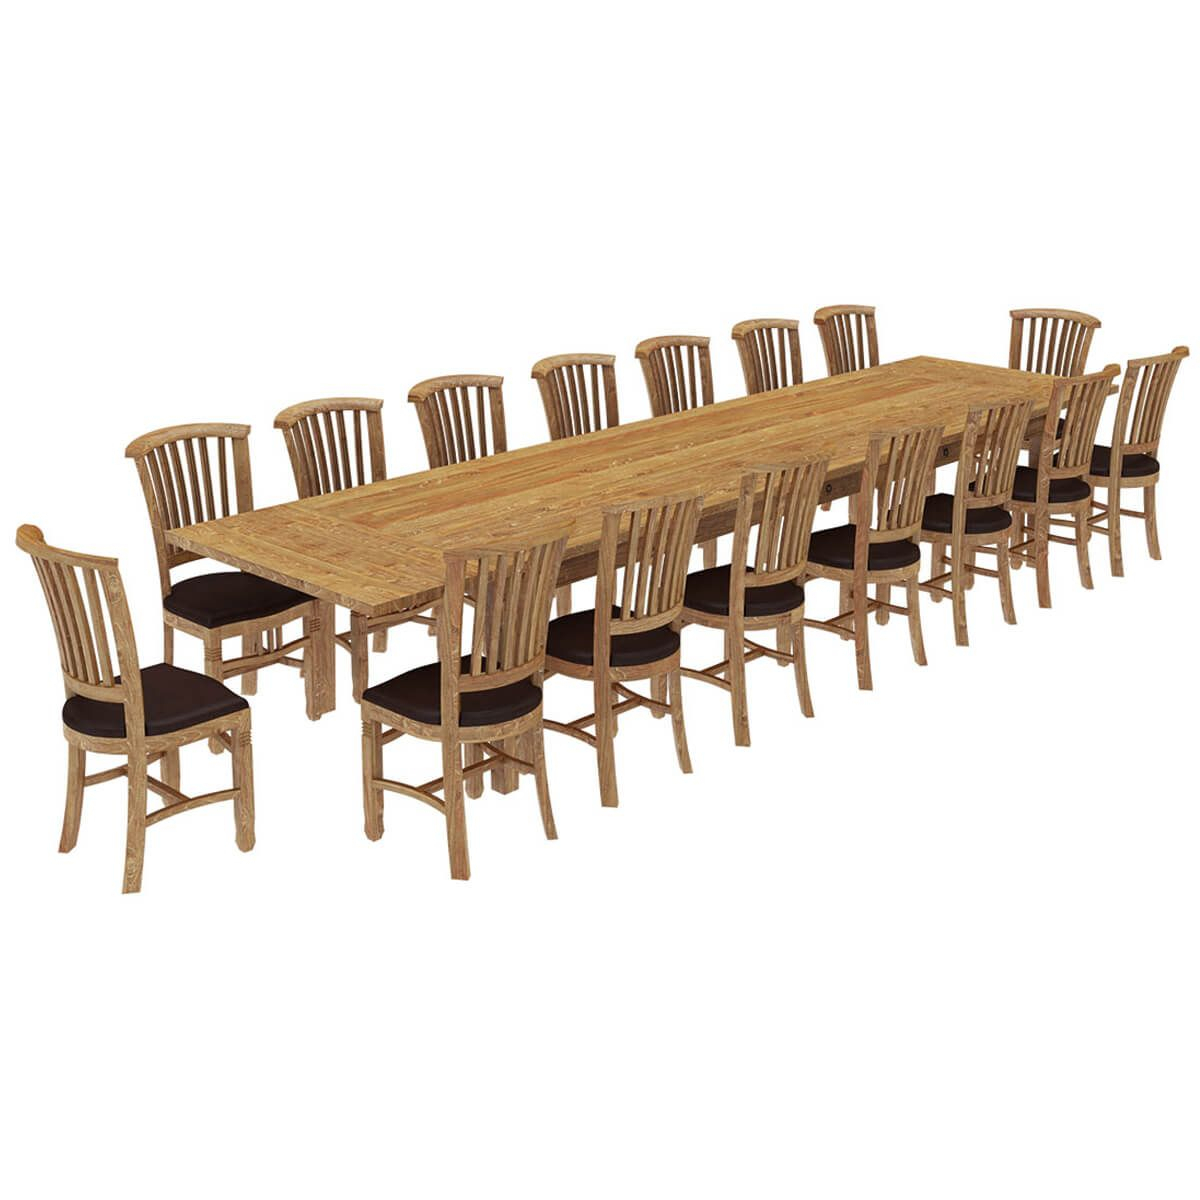 Brussels Reclaimed Wood 17 Piece Large Extendable Dining Within Most Current Brussels Reclaimed European Barnwood Dining Tables (View 5 of 25)